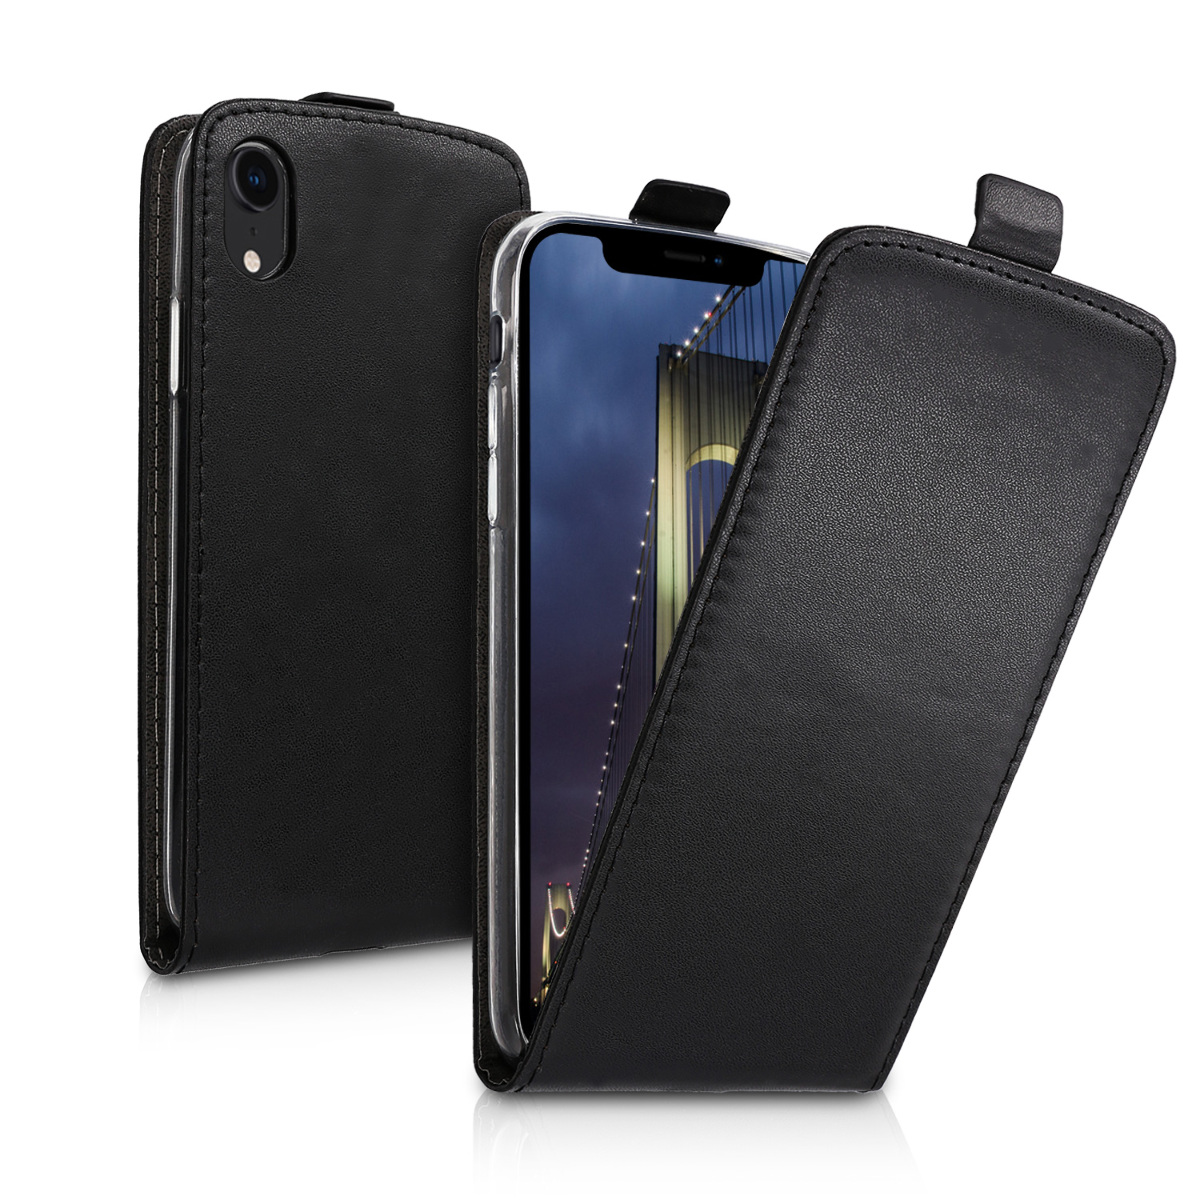 KW Flip Θήκη Apple iPhone XR - Black (45956.01)